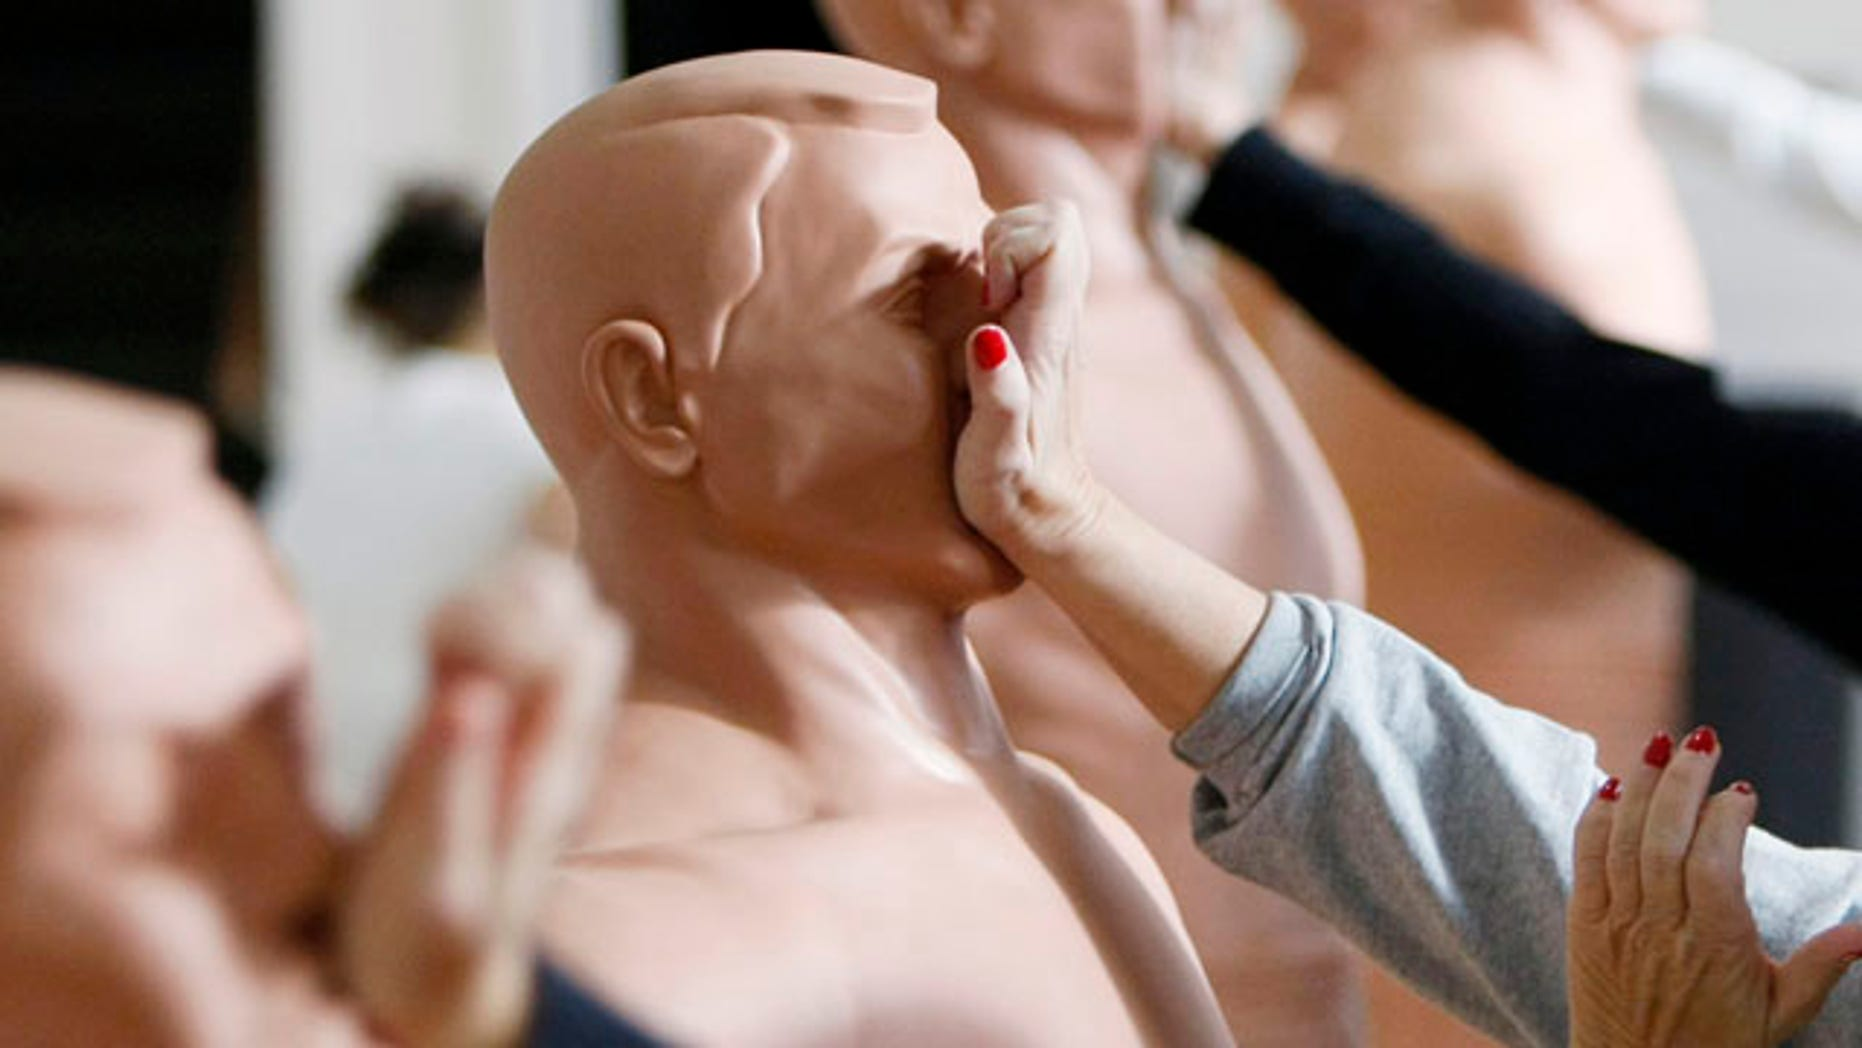 Women practice strikes against rubber mannequins during a self-defense course in Denver.